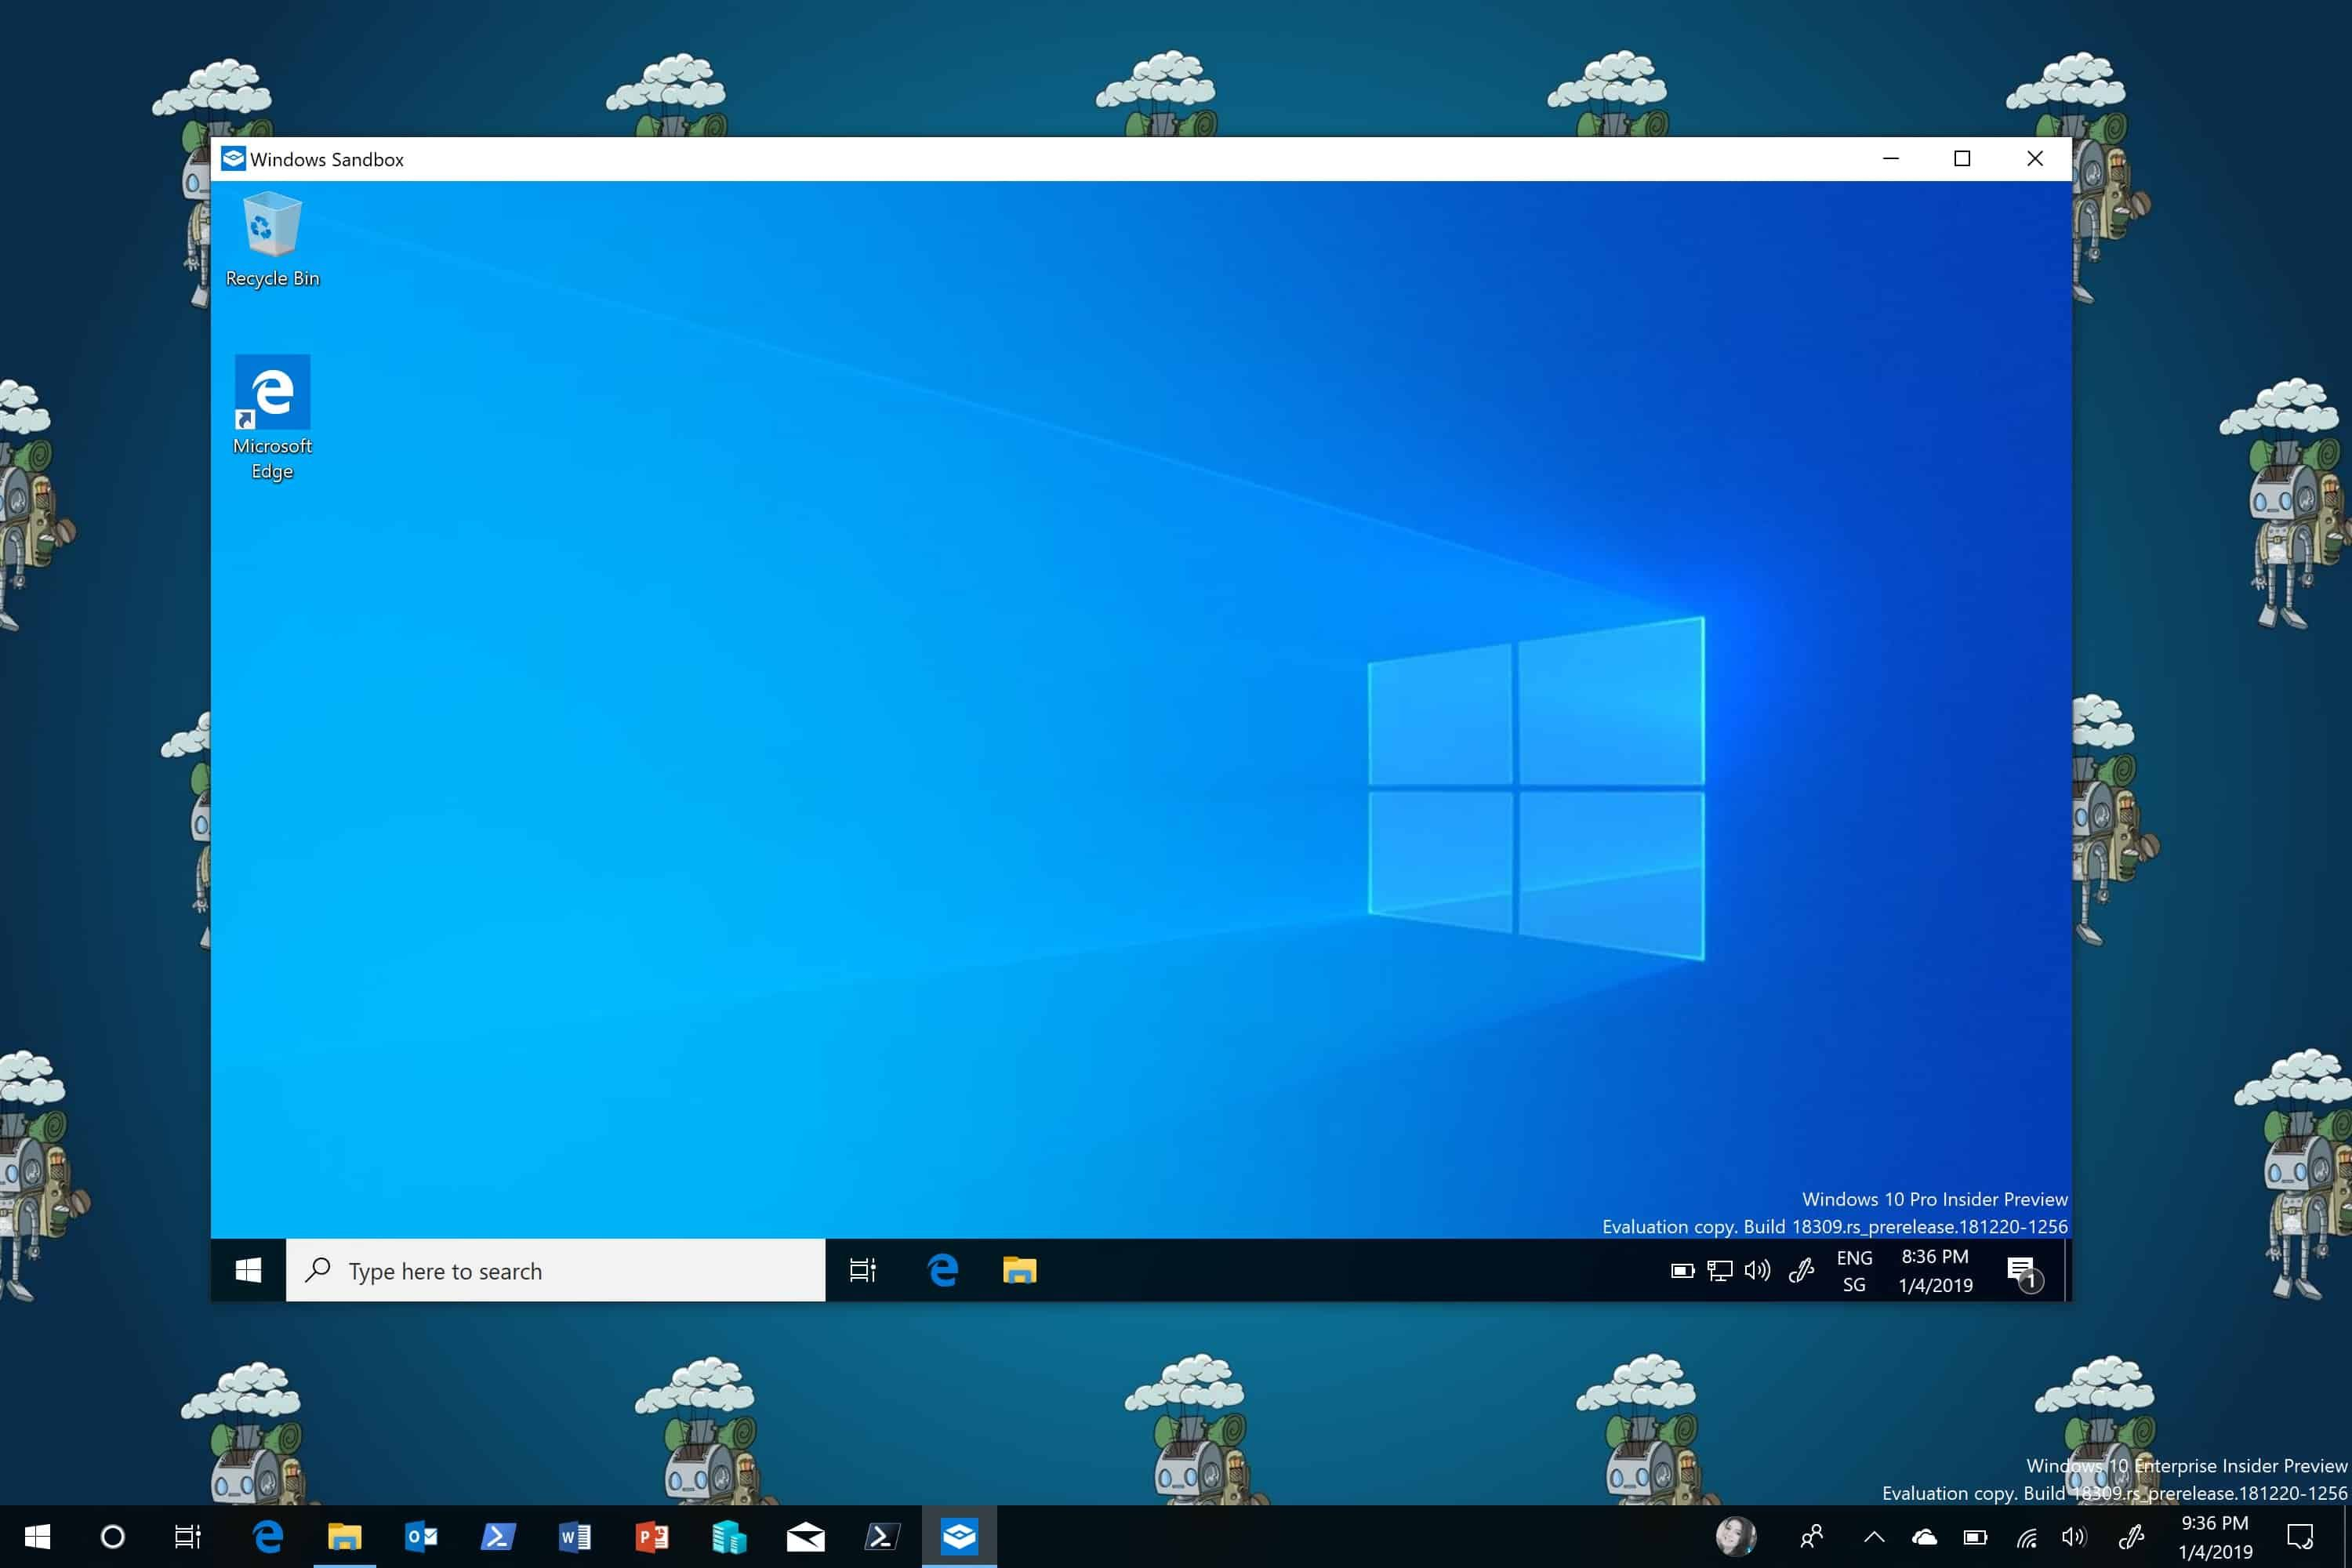 With The Latest Release Of Windows 10 1903 Microsoft Introduced A New Feature Called Windows Sandbox Window Windows 10 Desktop Environment Windows Defender